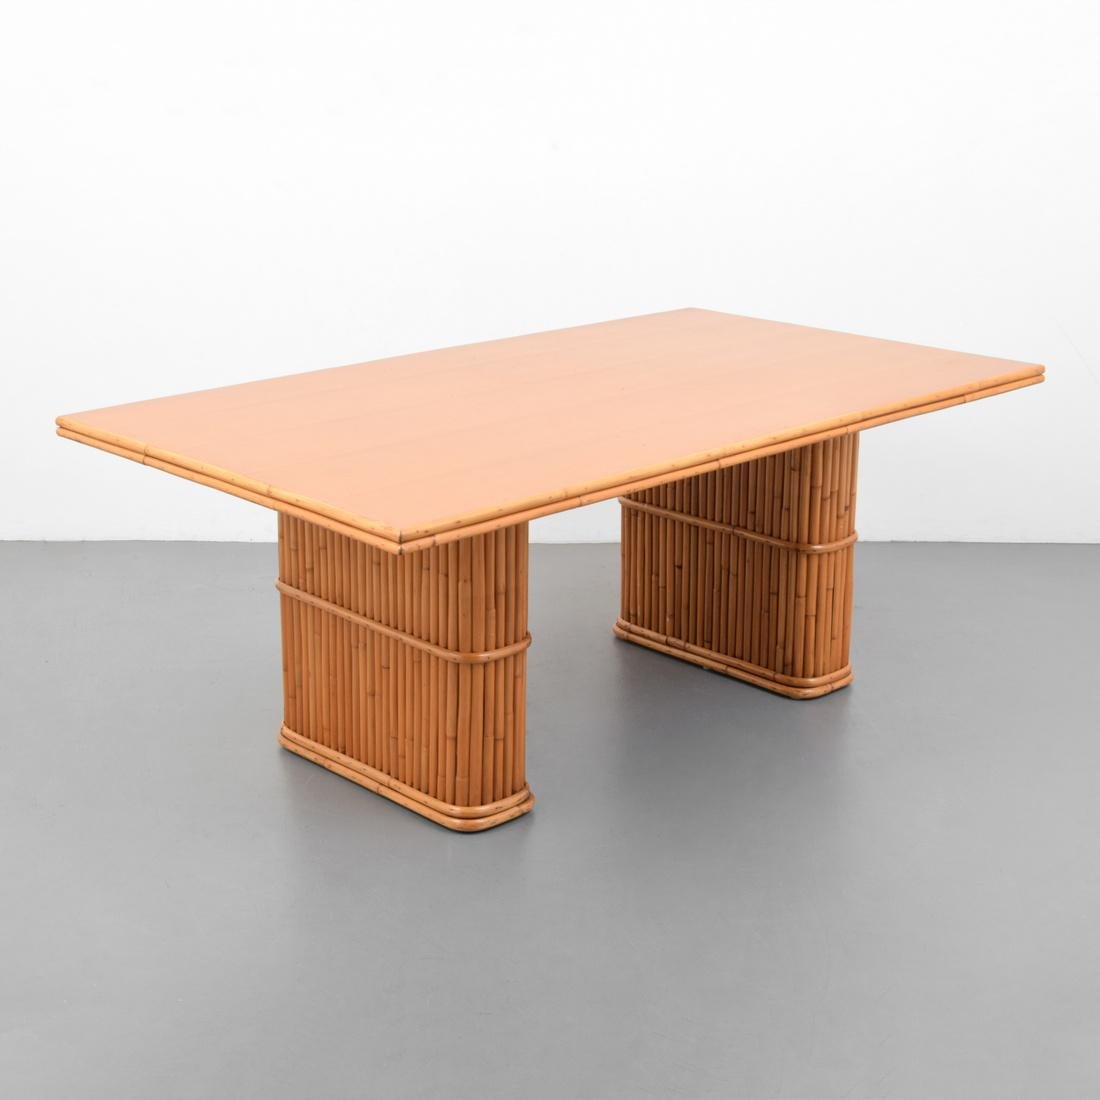 Rattan Dining Table, Manner of Paul Frankl